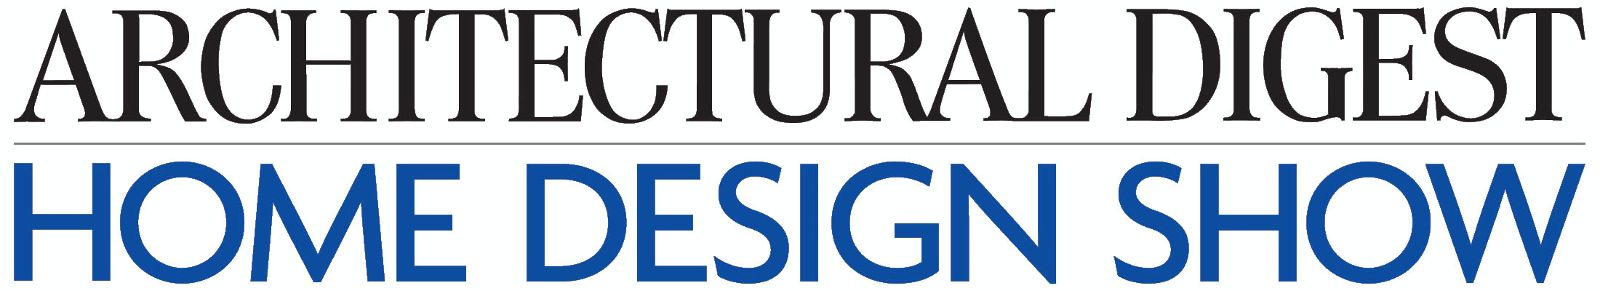 architectural digest design show - what can we expect?